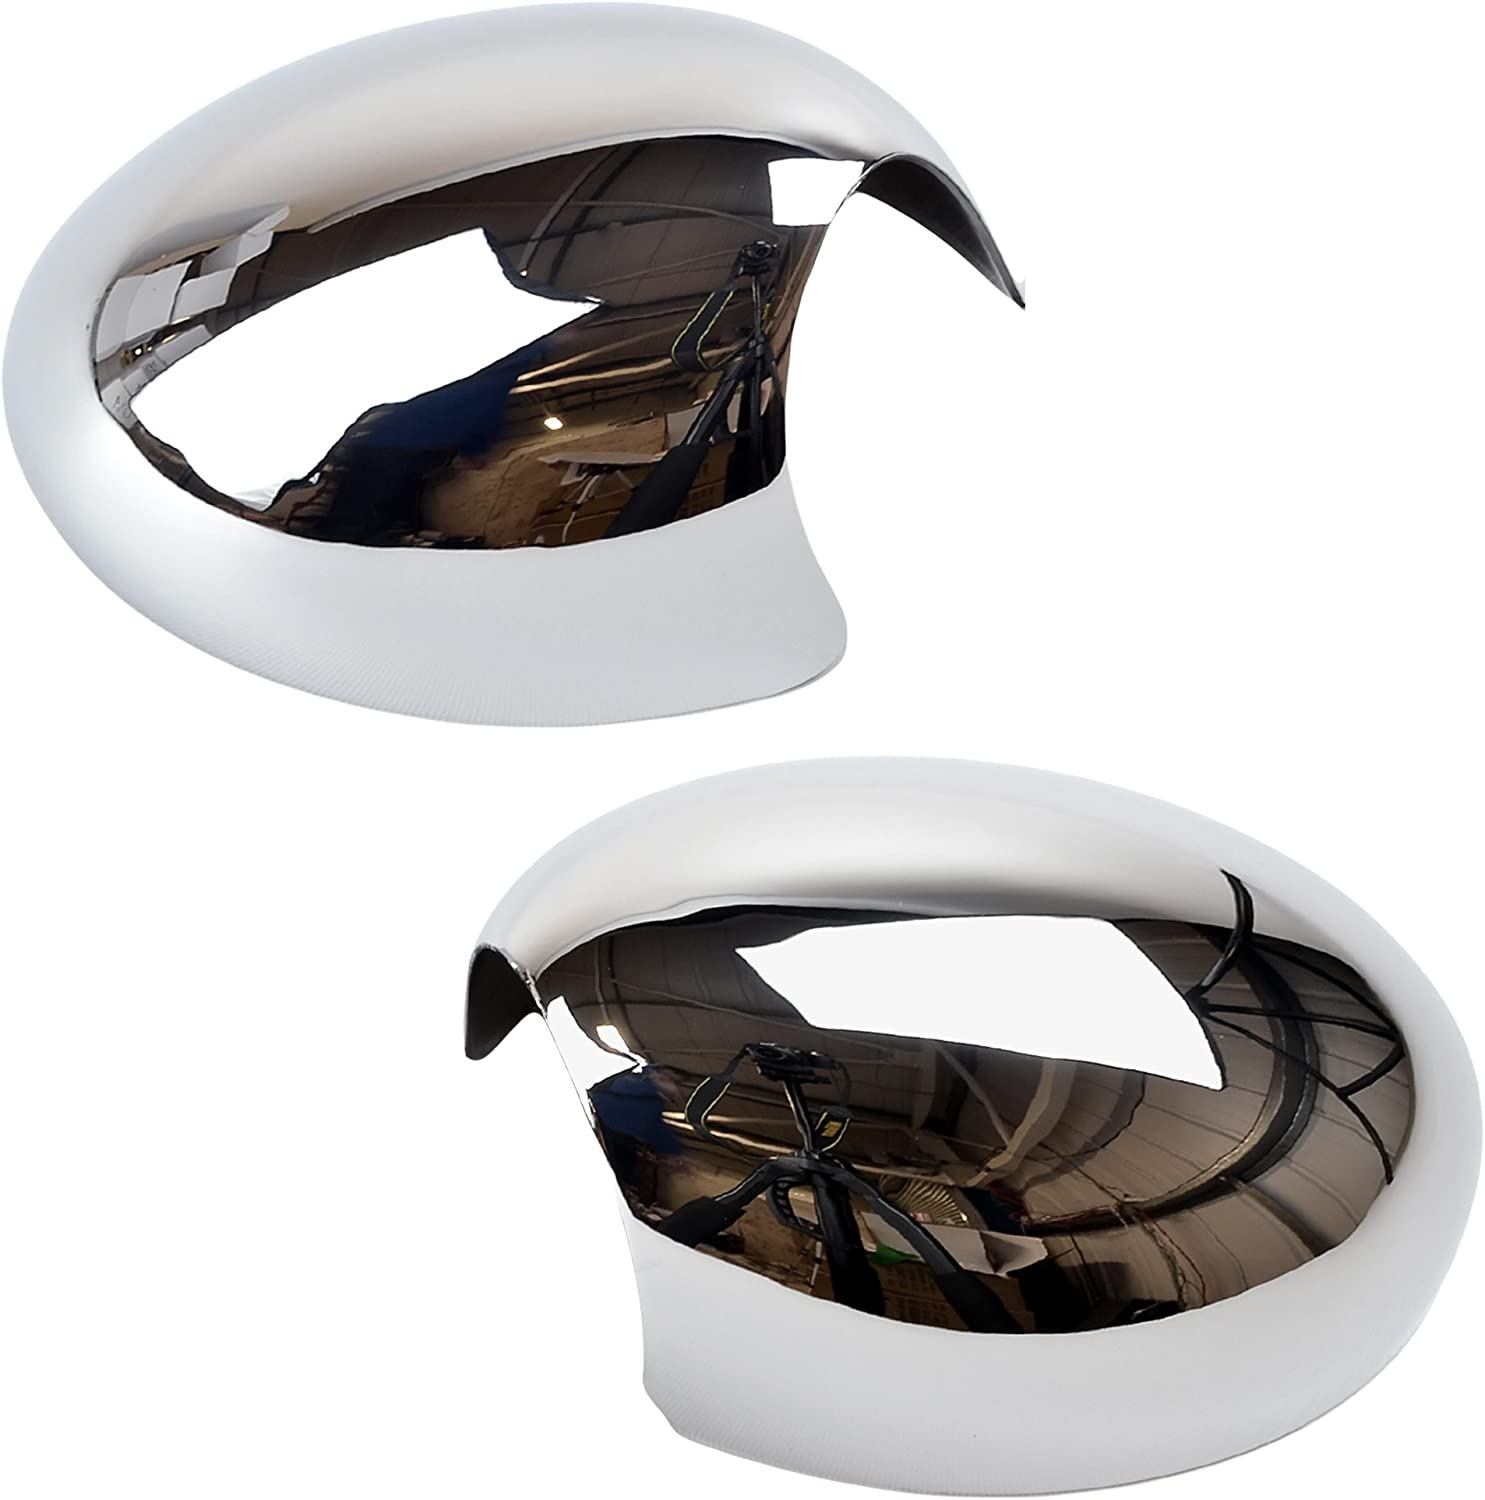 CHROME CUP WING MIRROR GLASS COVERS